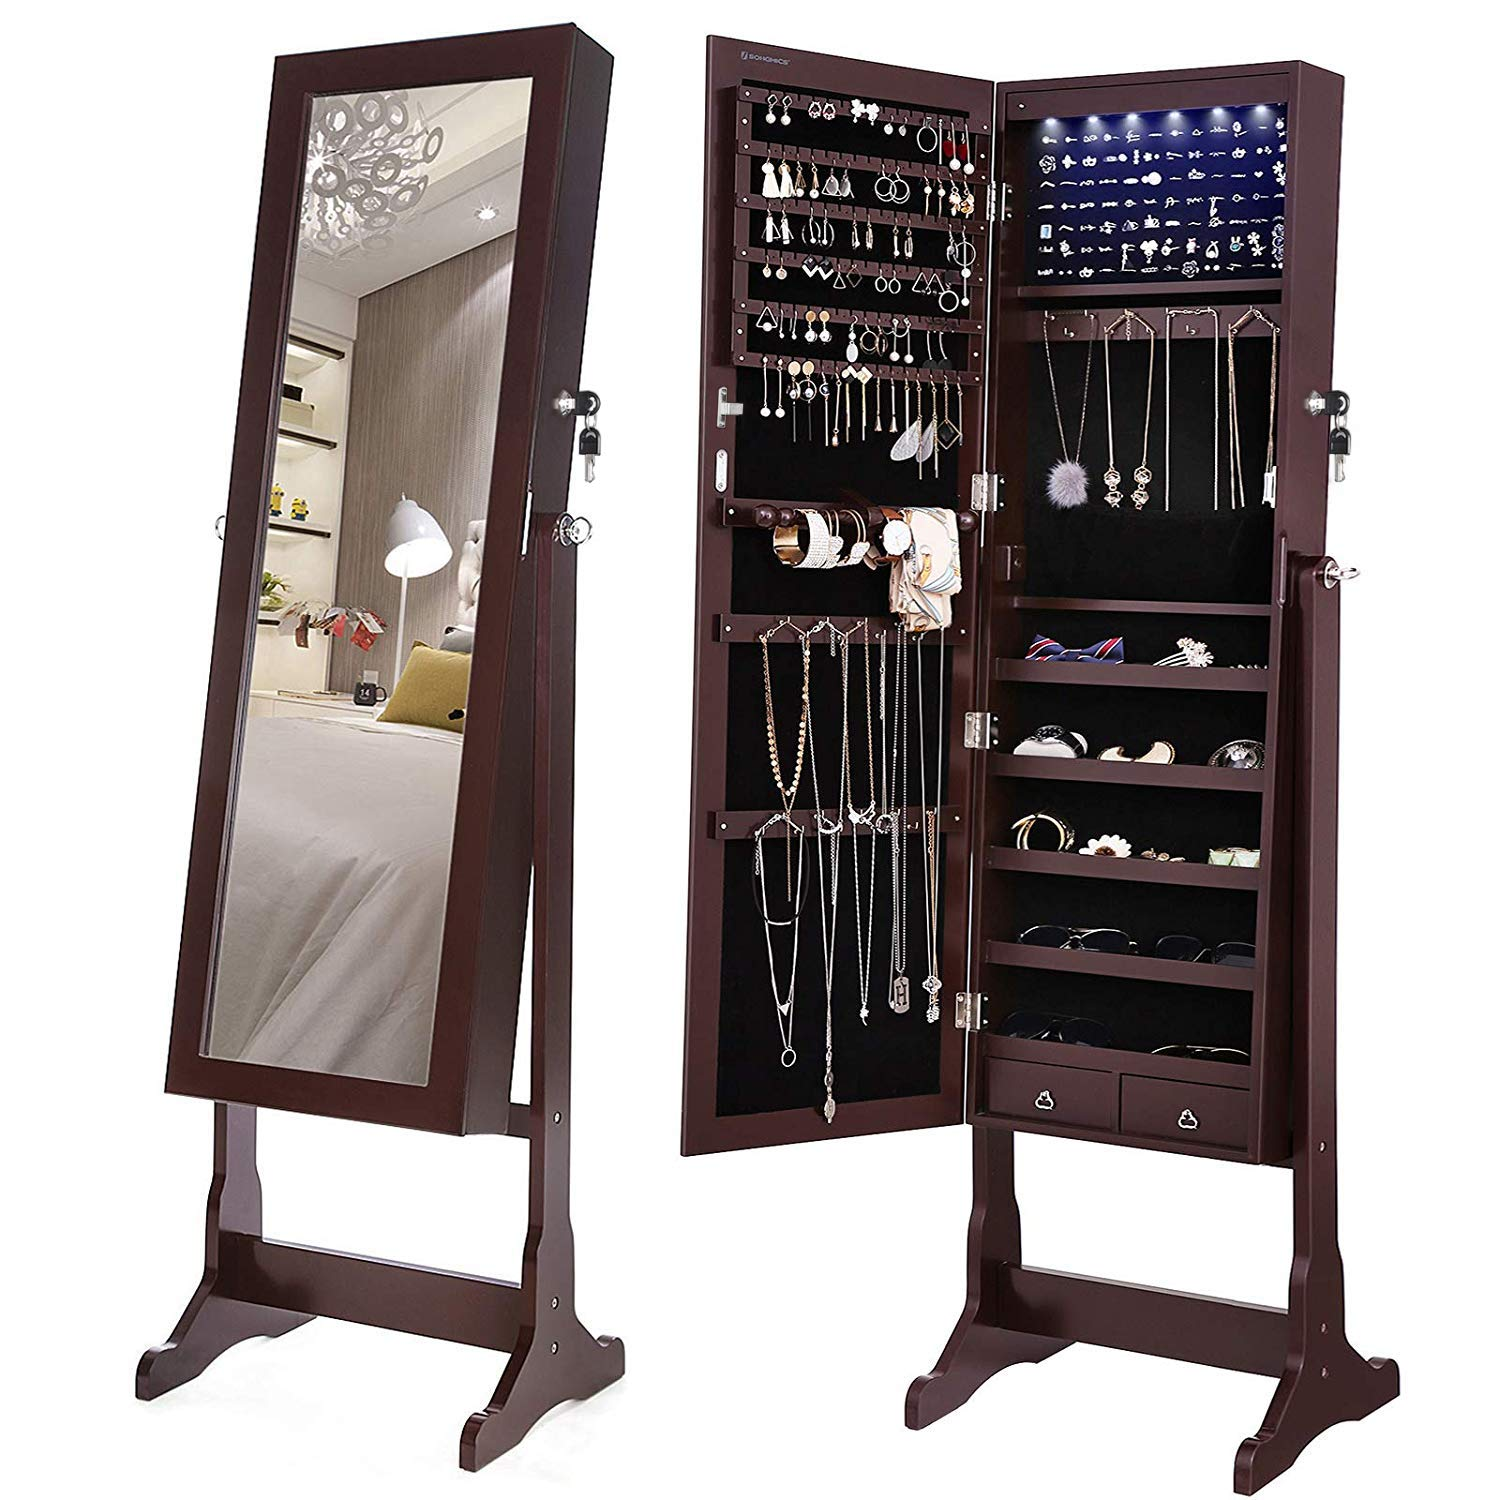 SONGMICS 6 LEDs Mirror Jewelry Cabinet Lockable Standing Mirrored Jewelry Armoire Organizer 2 Drawers Brown UJJC94K by SONGMICS